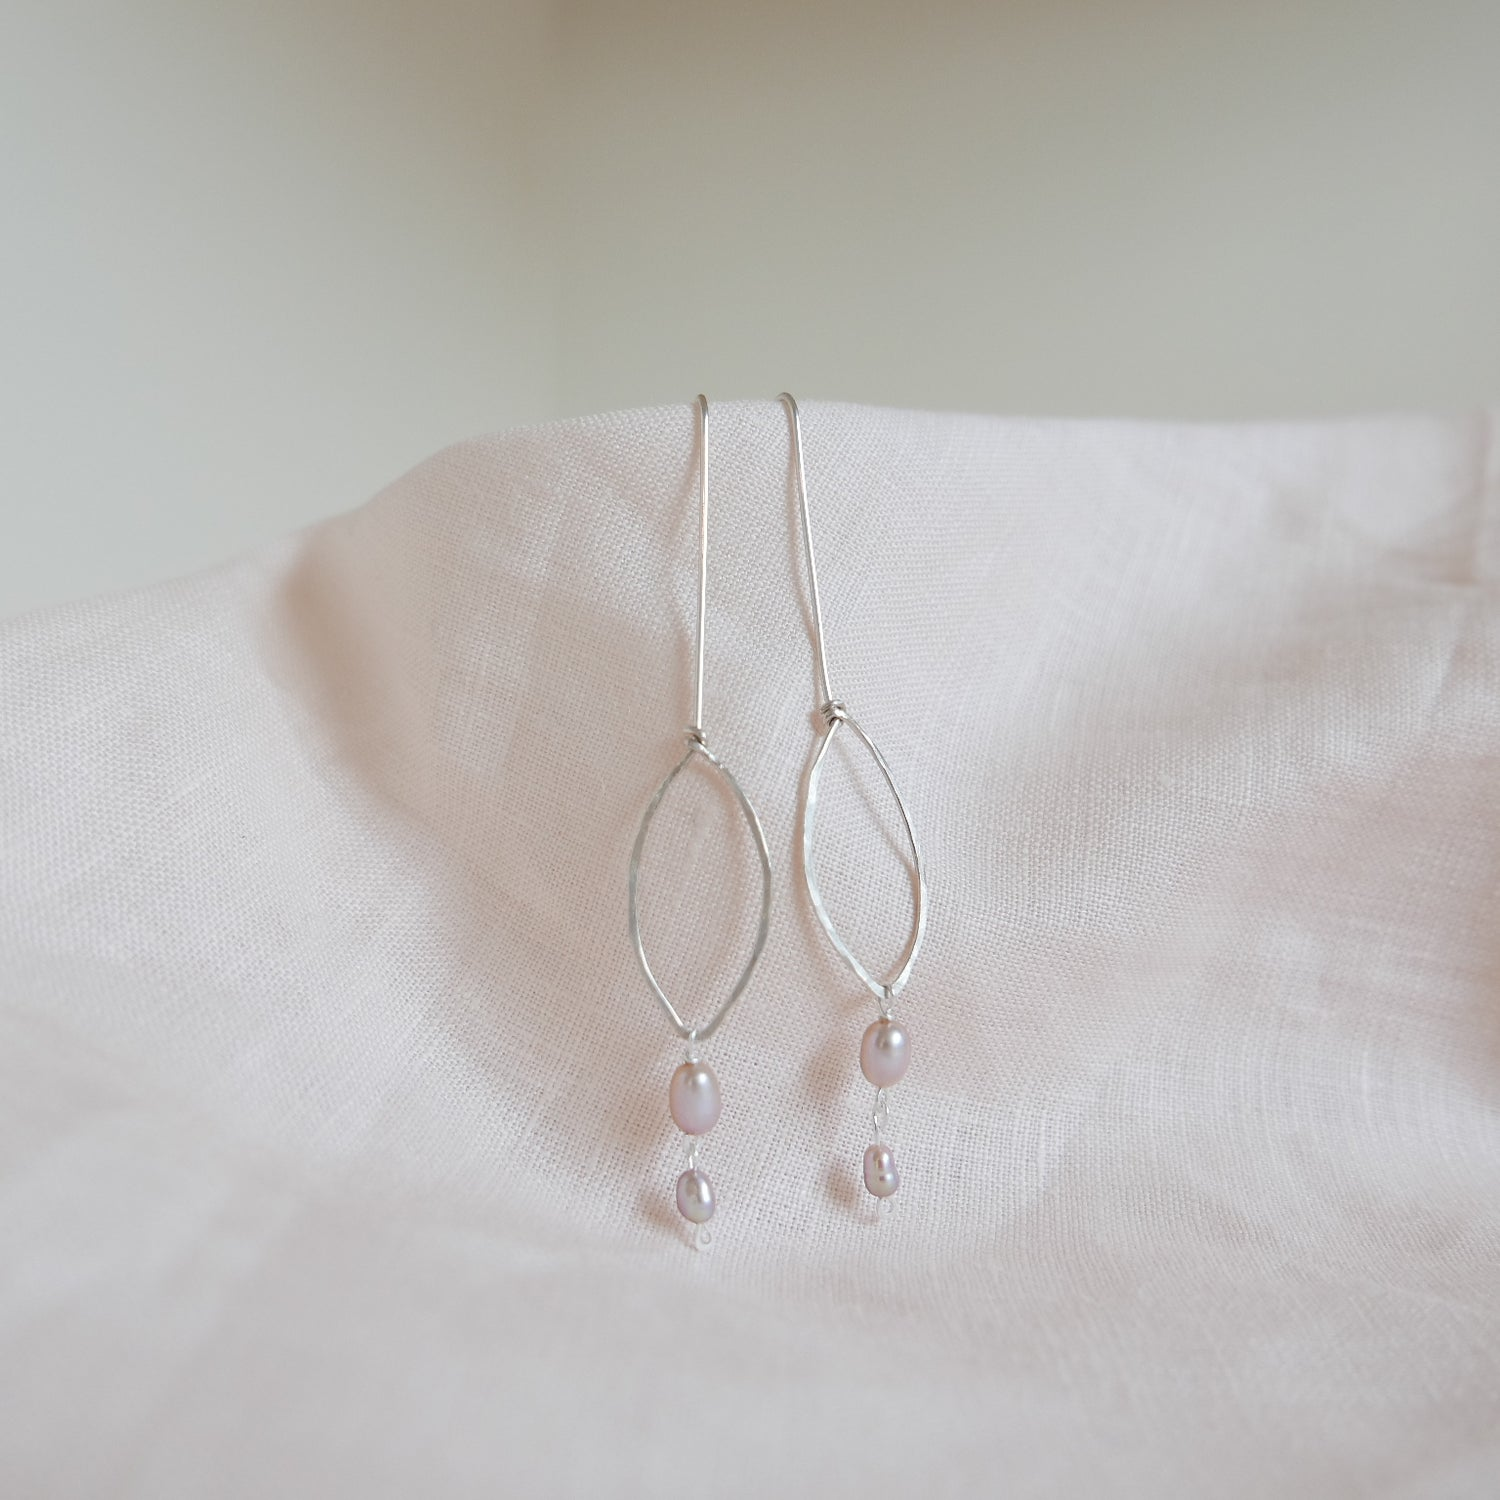 Image of Eclipse Earrings Oval - Freshwater Pearls